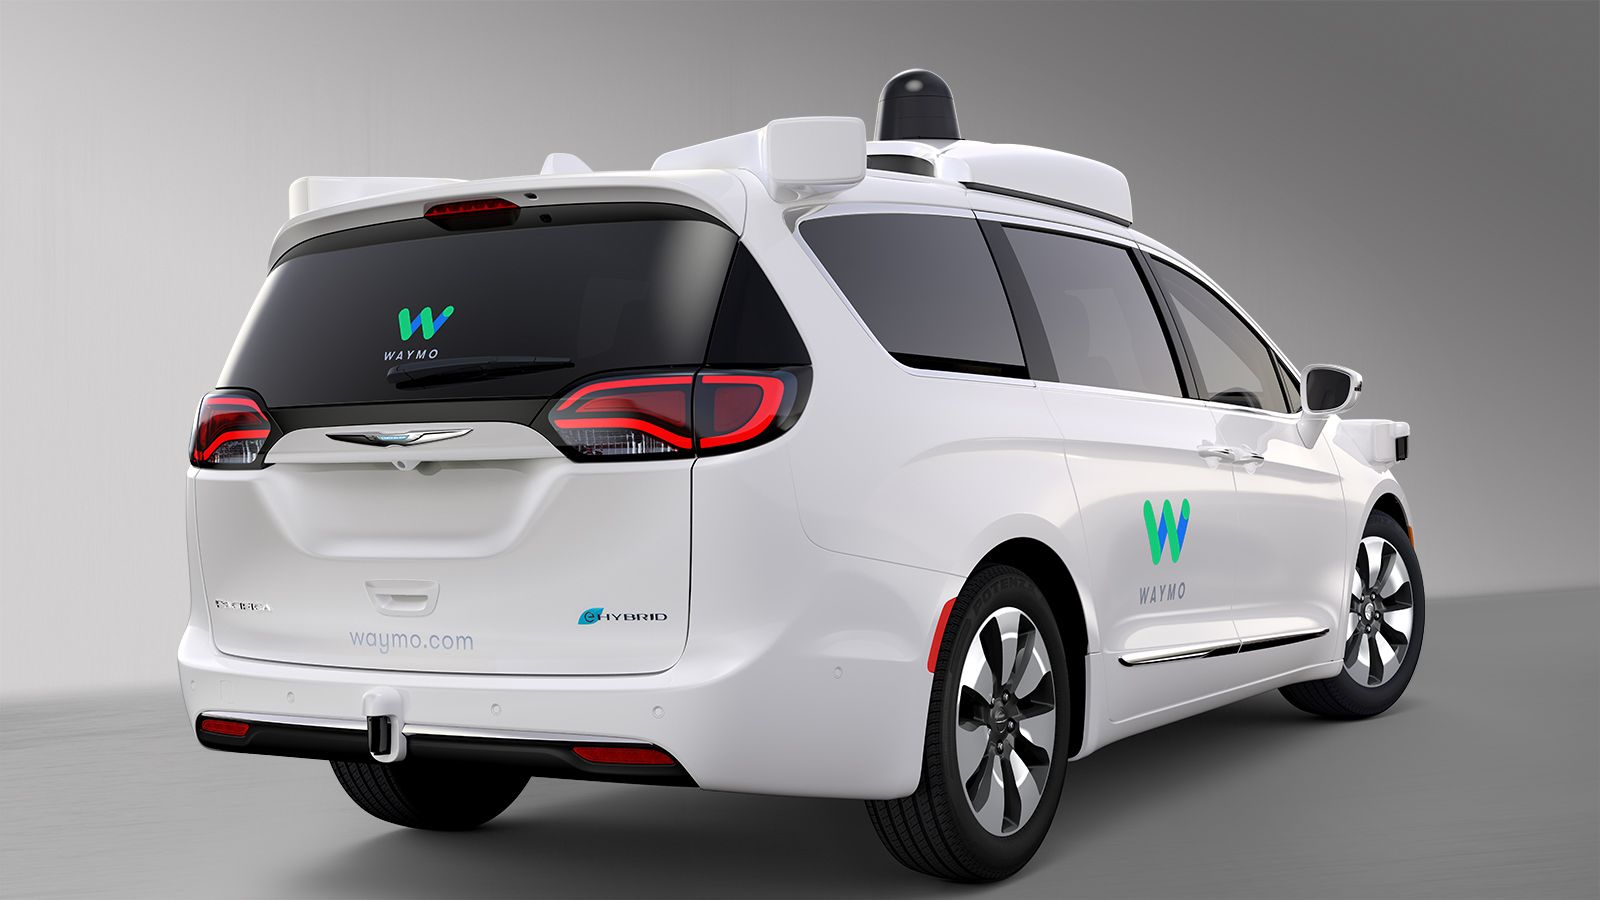 Fca And Google Partnership Results In A New Autonomous Chrysler